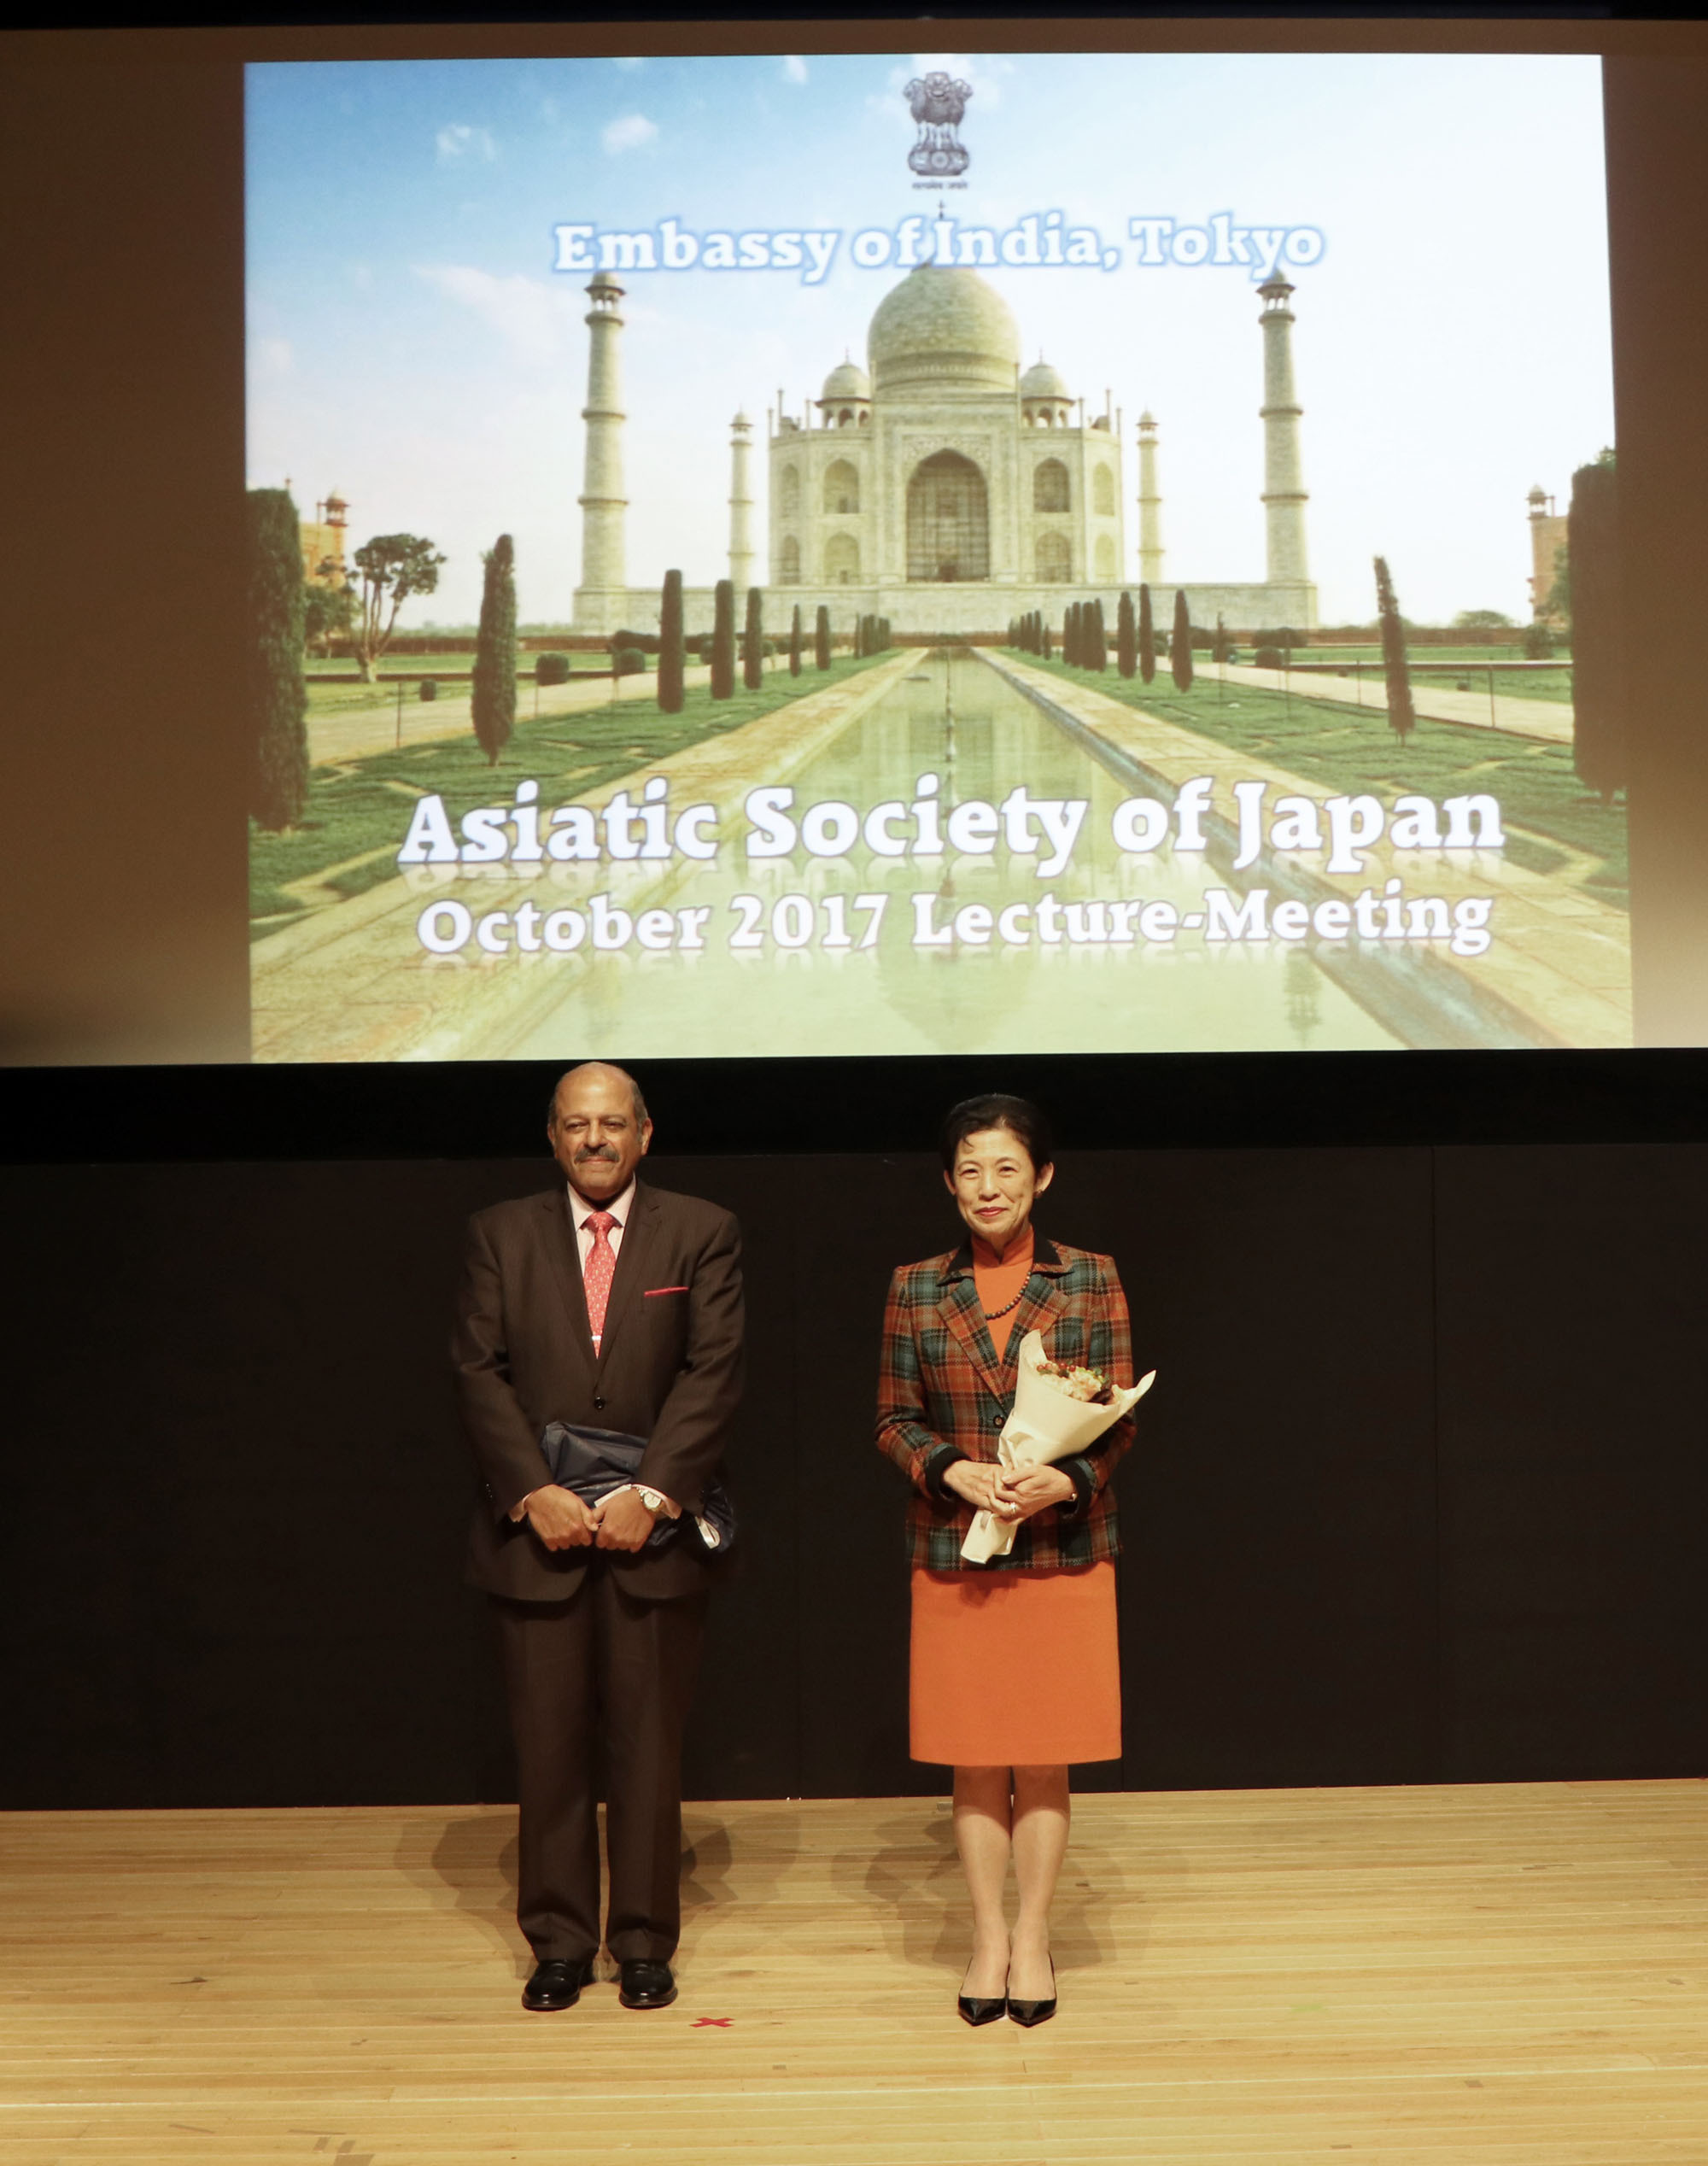 Indian Ambassador Sujan R. Chinoy (left) and Princess Takamado pose for a photo following a spoken presentation from the ambassador at the Indian Embassy on Oct. 23. |  COURTESY OF THE INDIAN EMBASSY